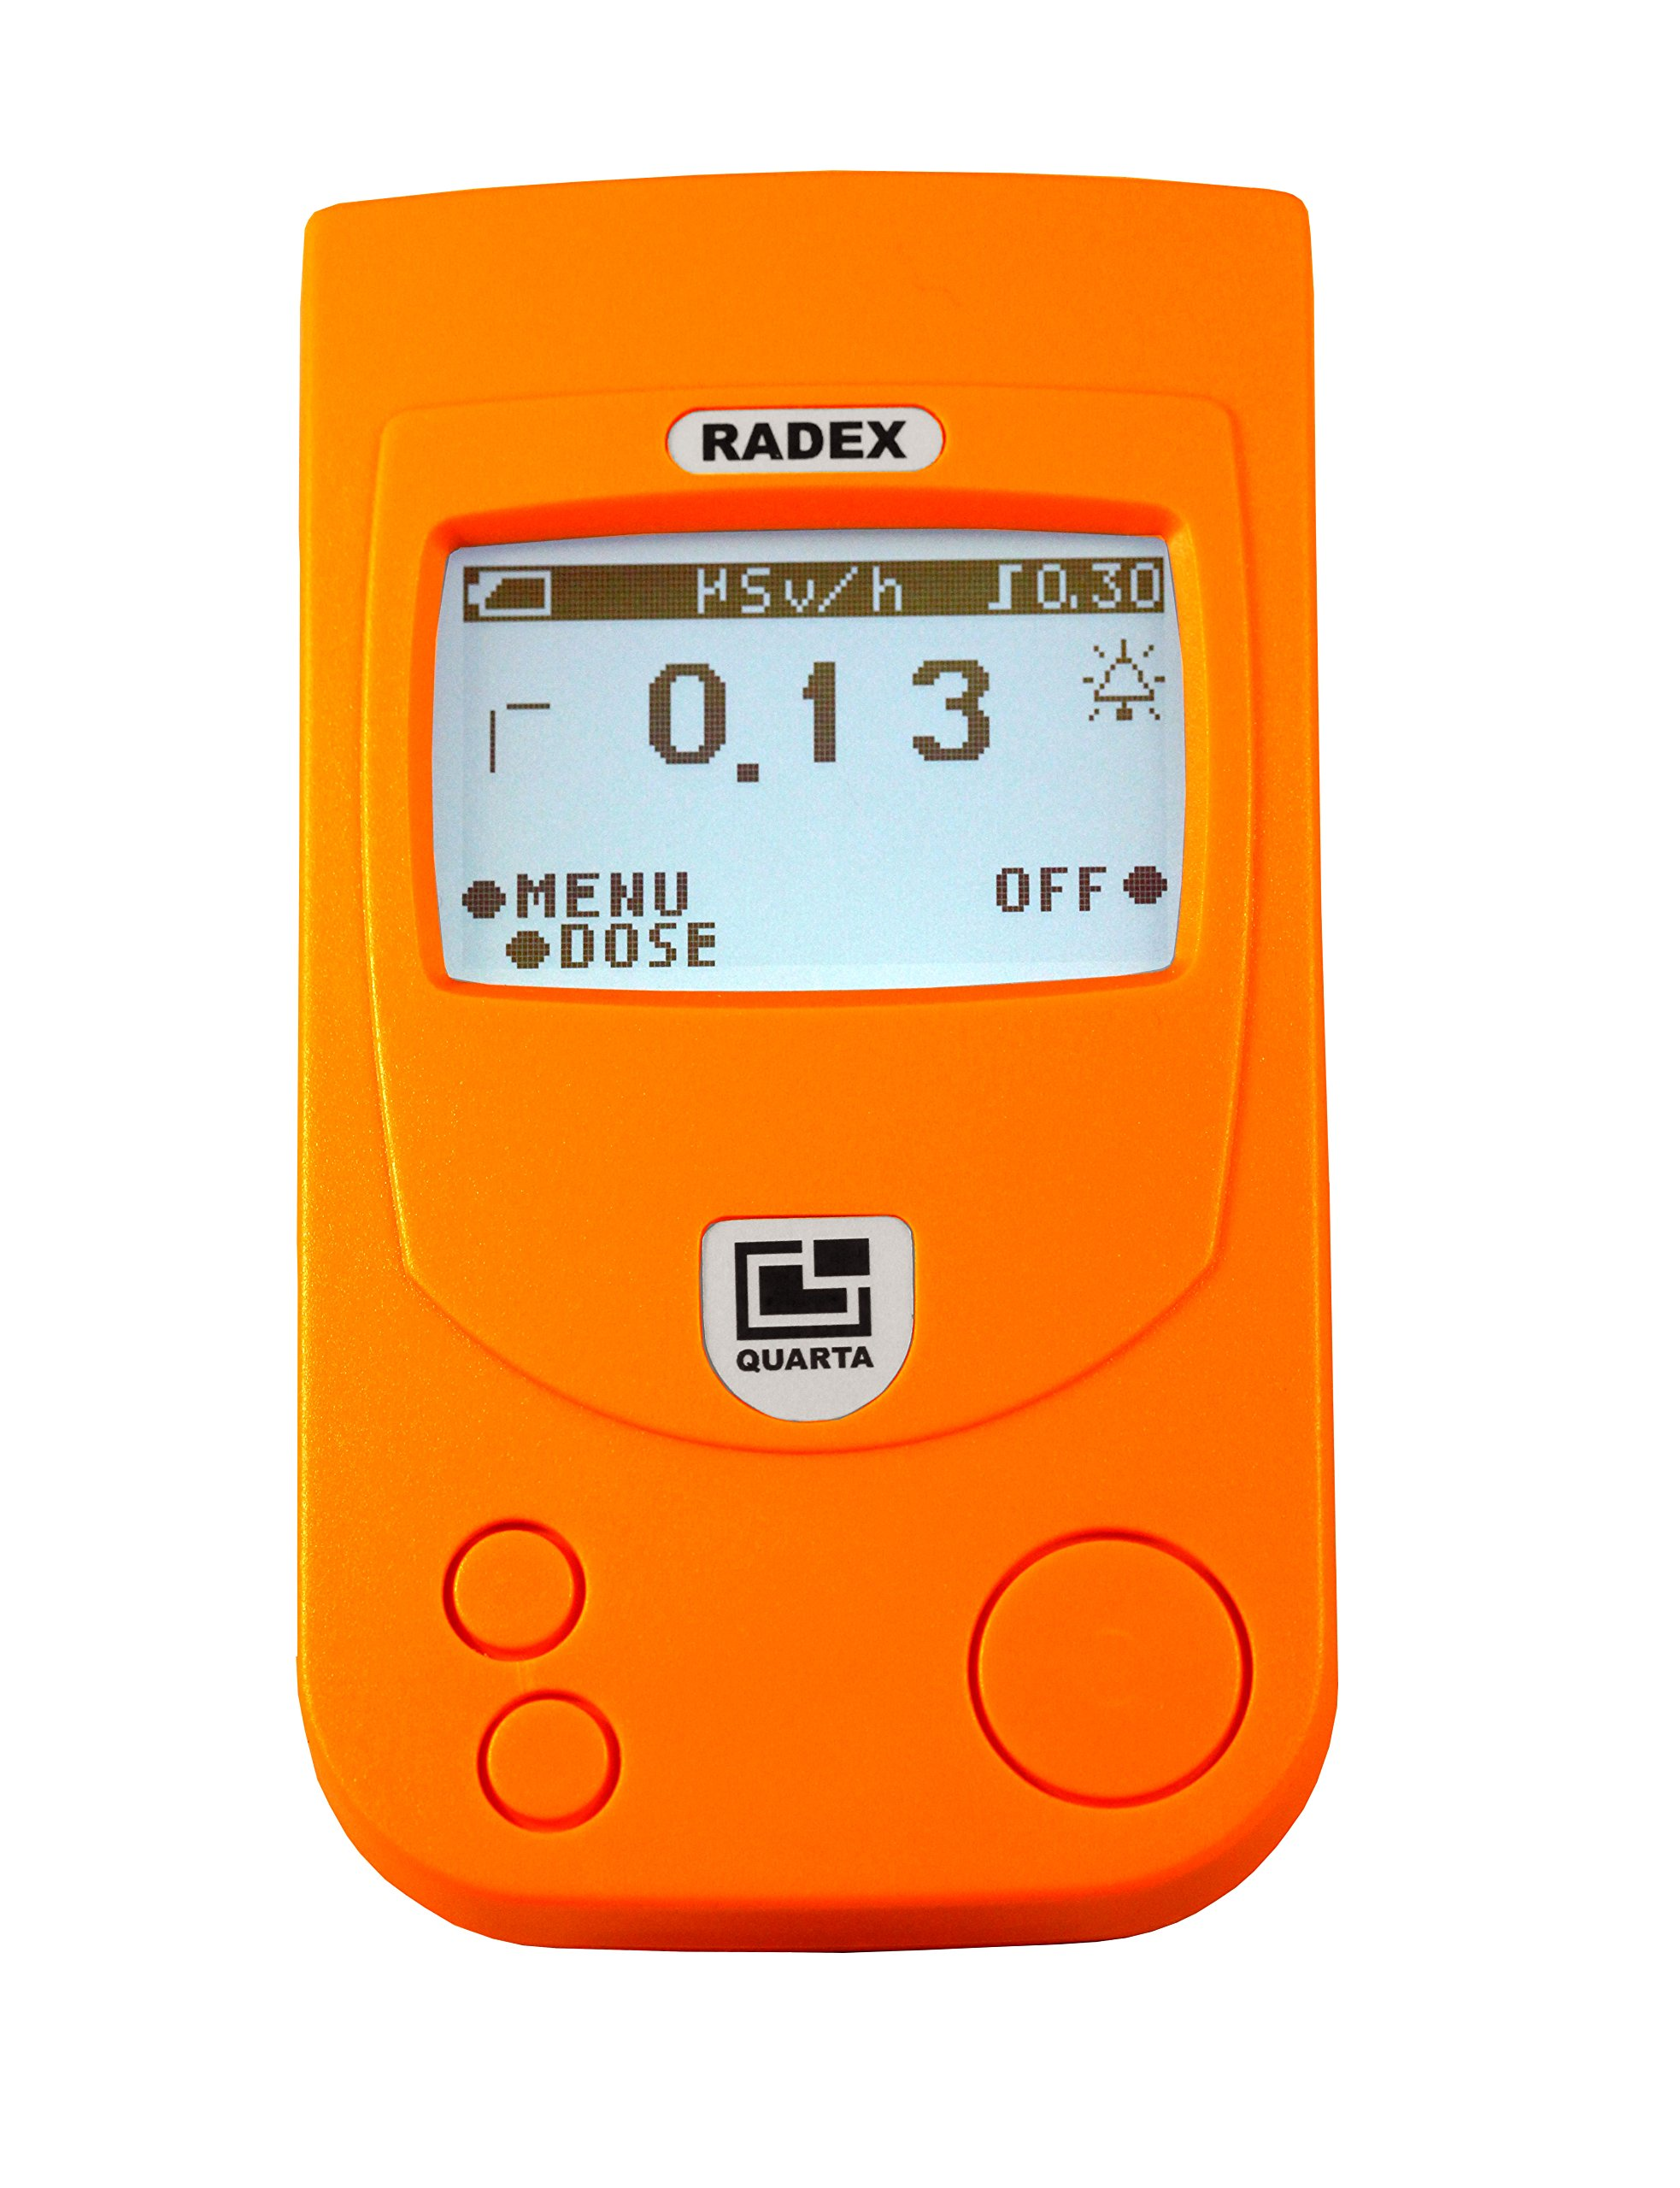 RADEX RD1503+ with Dosimeter (Outdoor Version): High accuracy geiger counter, radiation detector